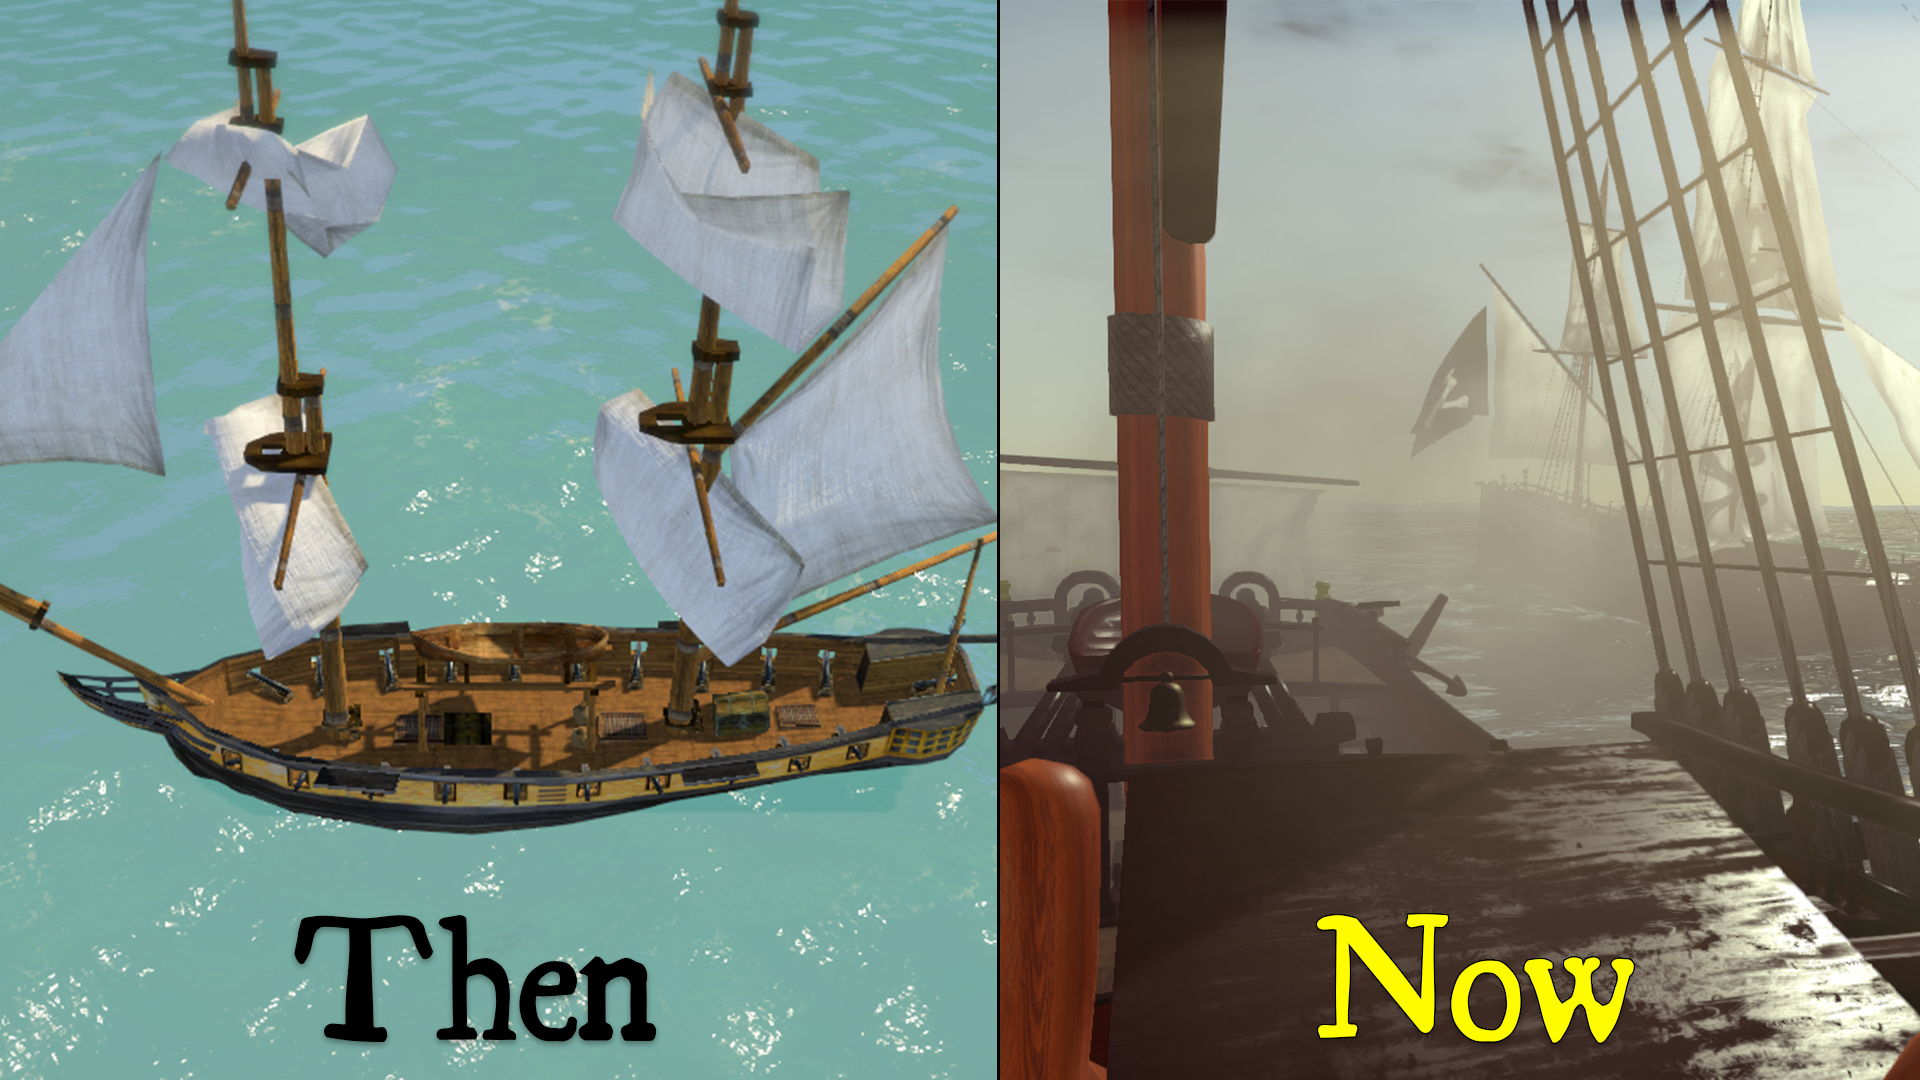 then_and_now_2 Naval Battle Game Comes to Life - End of Year Summary